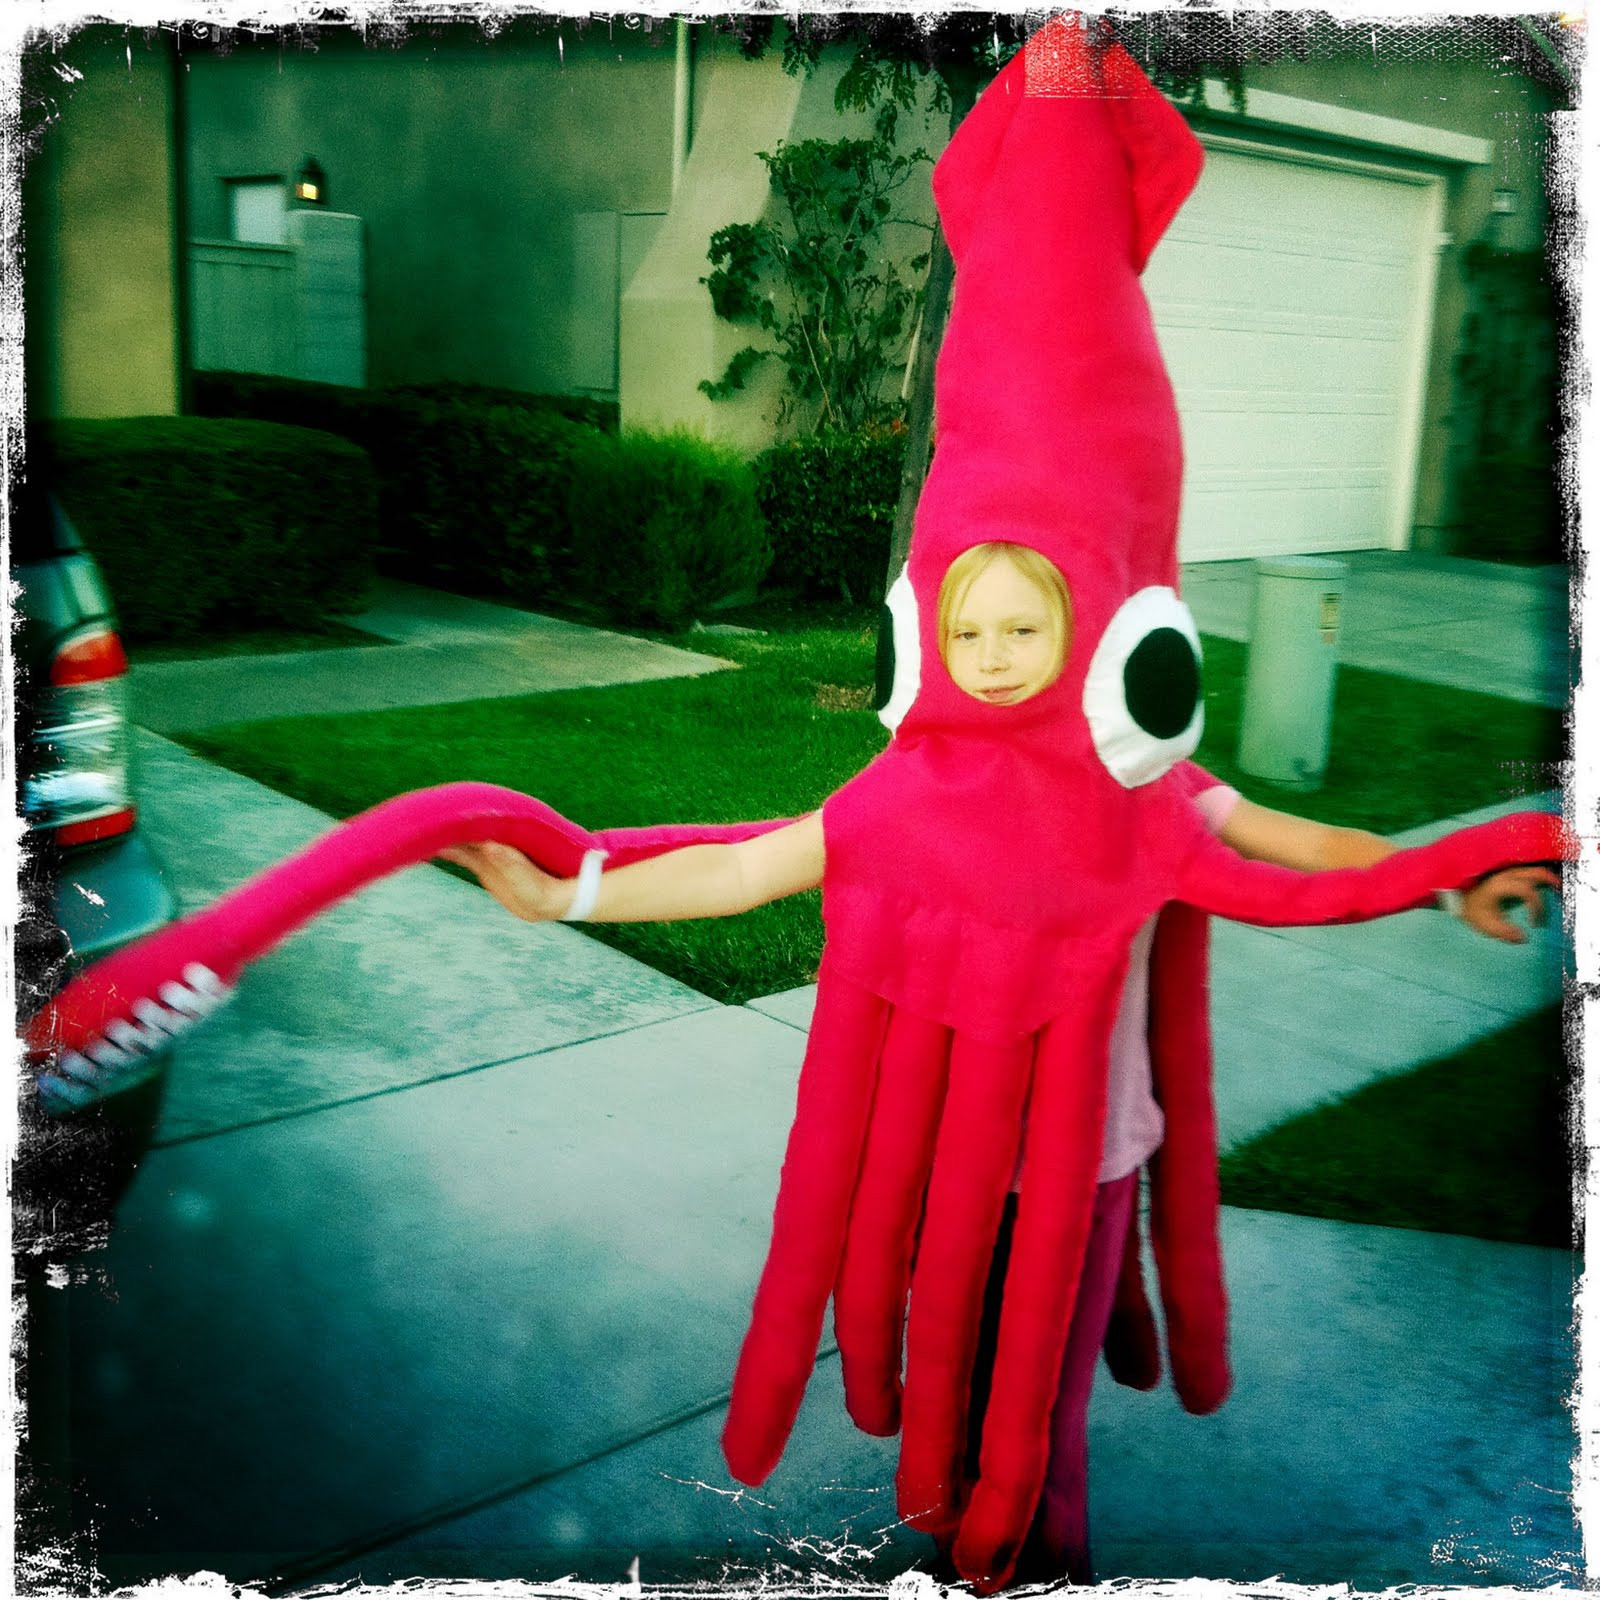 Best ideas about Squid Costume DIY . Save or Pin Where to find a non non phallic squid costume Now.